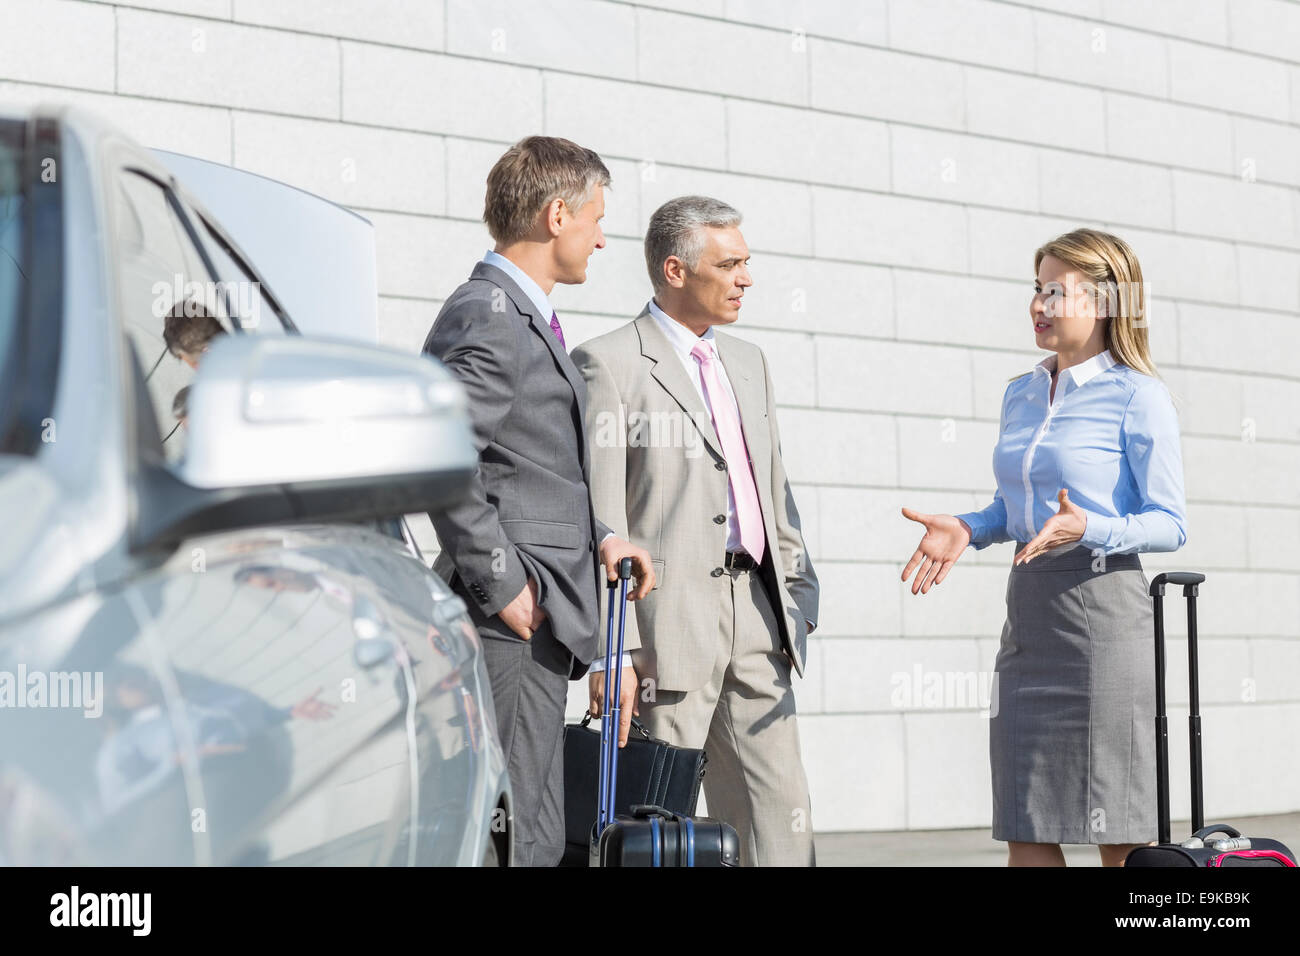 Businesspeople with luggage discussing outside car Stock Photo